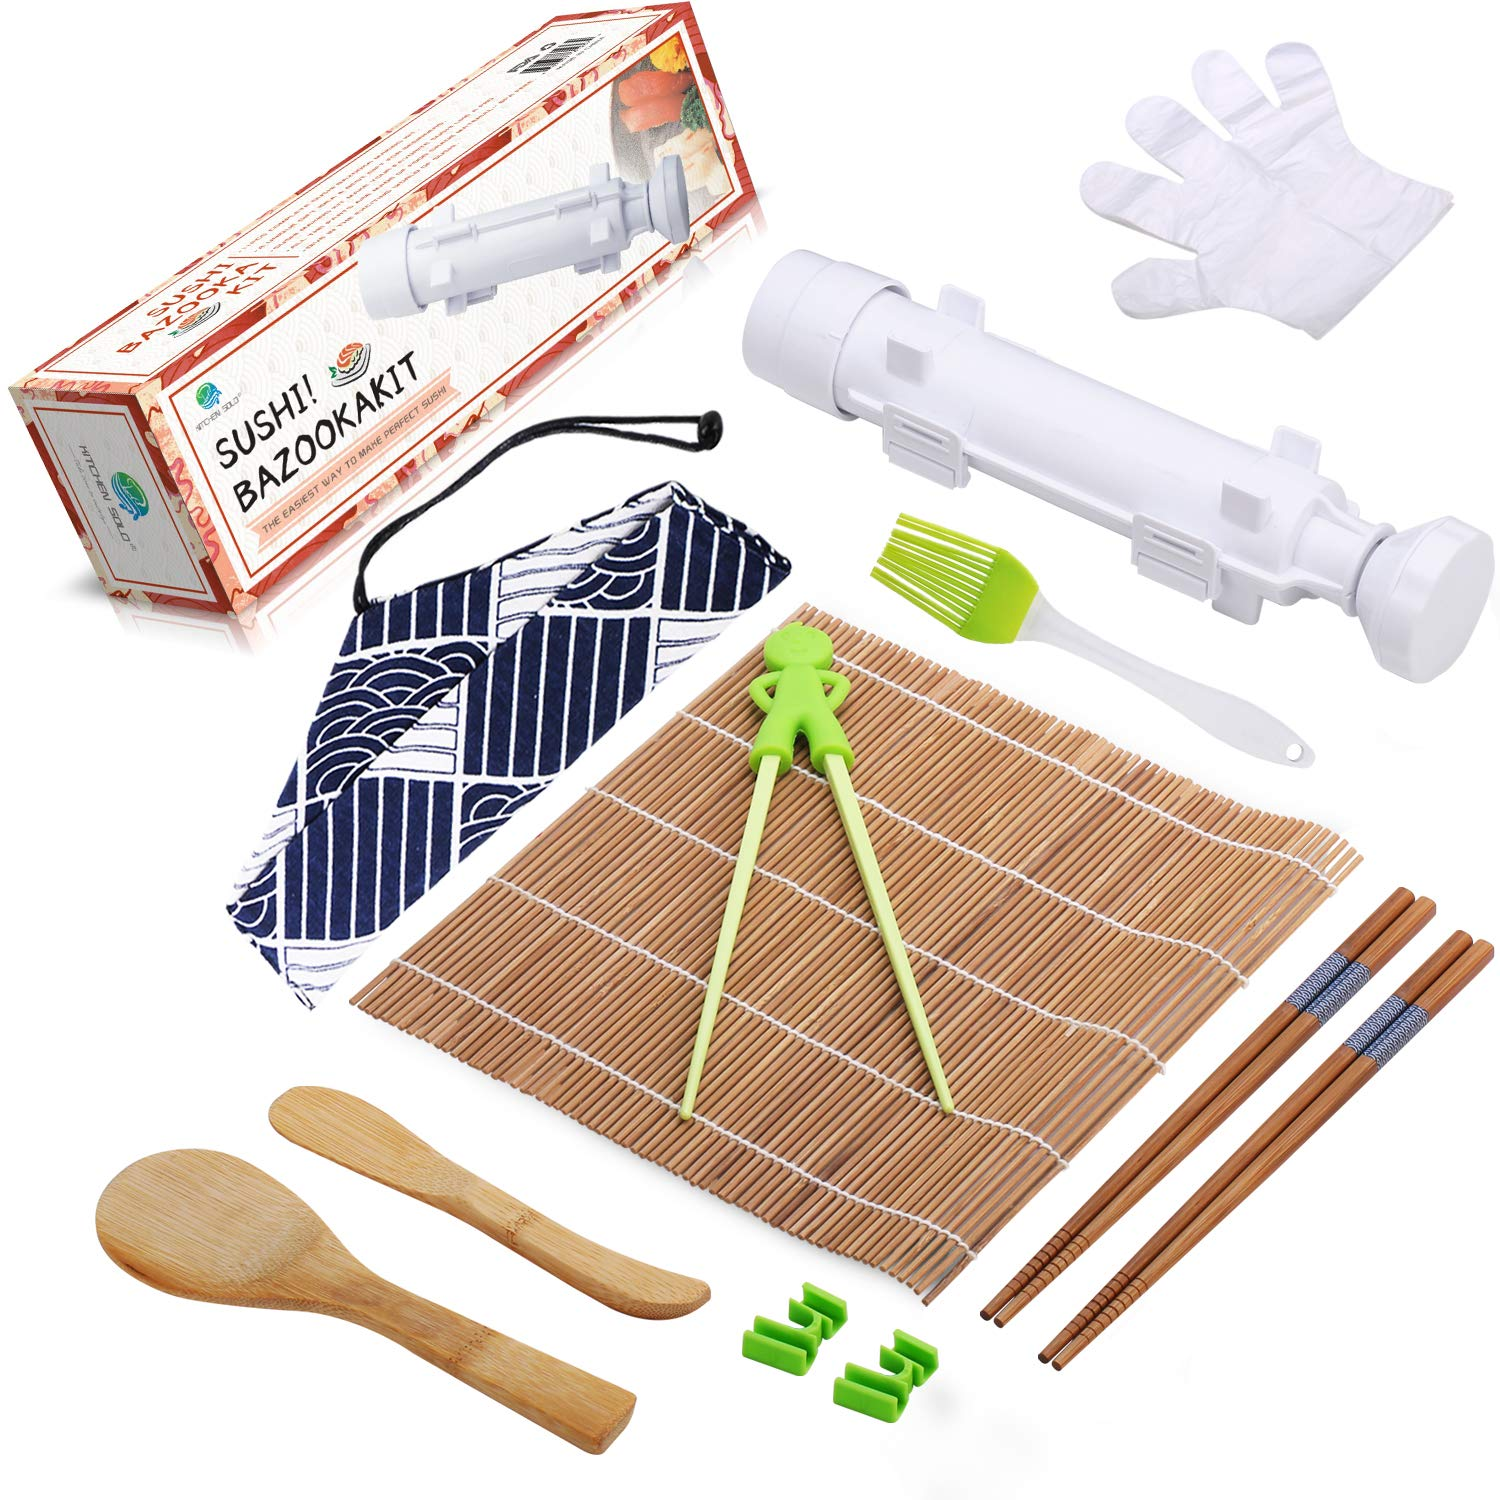 Beginner Sushi Making Kit - All In One Sushi Bazooka Maker with Bamboo Mats, Training Chopsticks with Helper, Paddle, Spreader, Silicone Brush, Disposable Gloves and Cotton Bag - Gift Box by Kitchen Solo